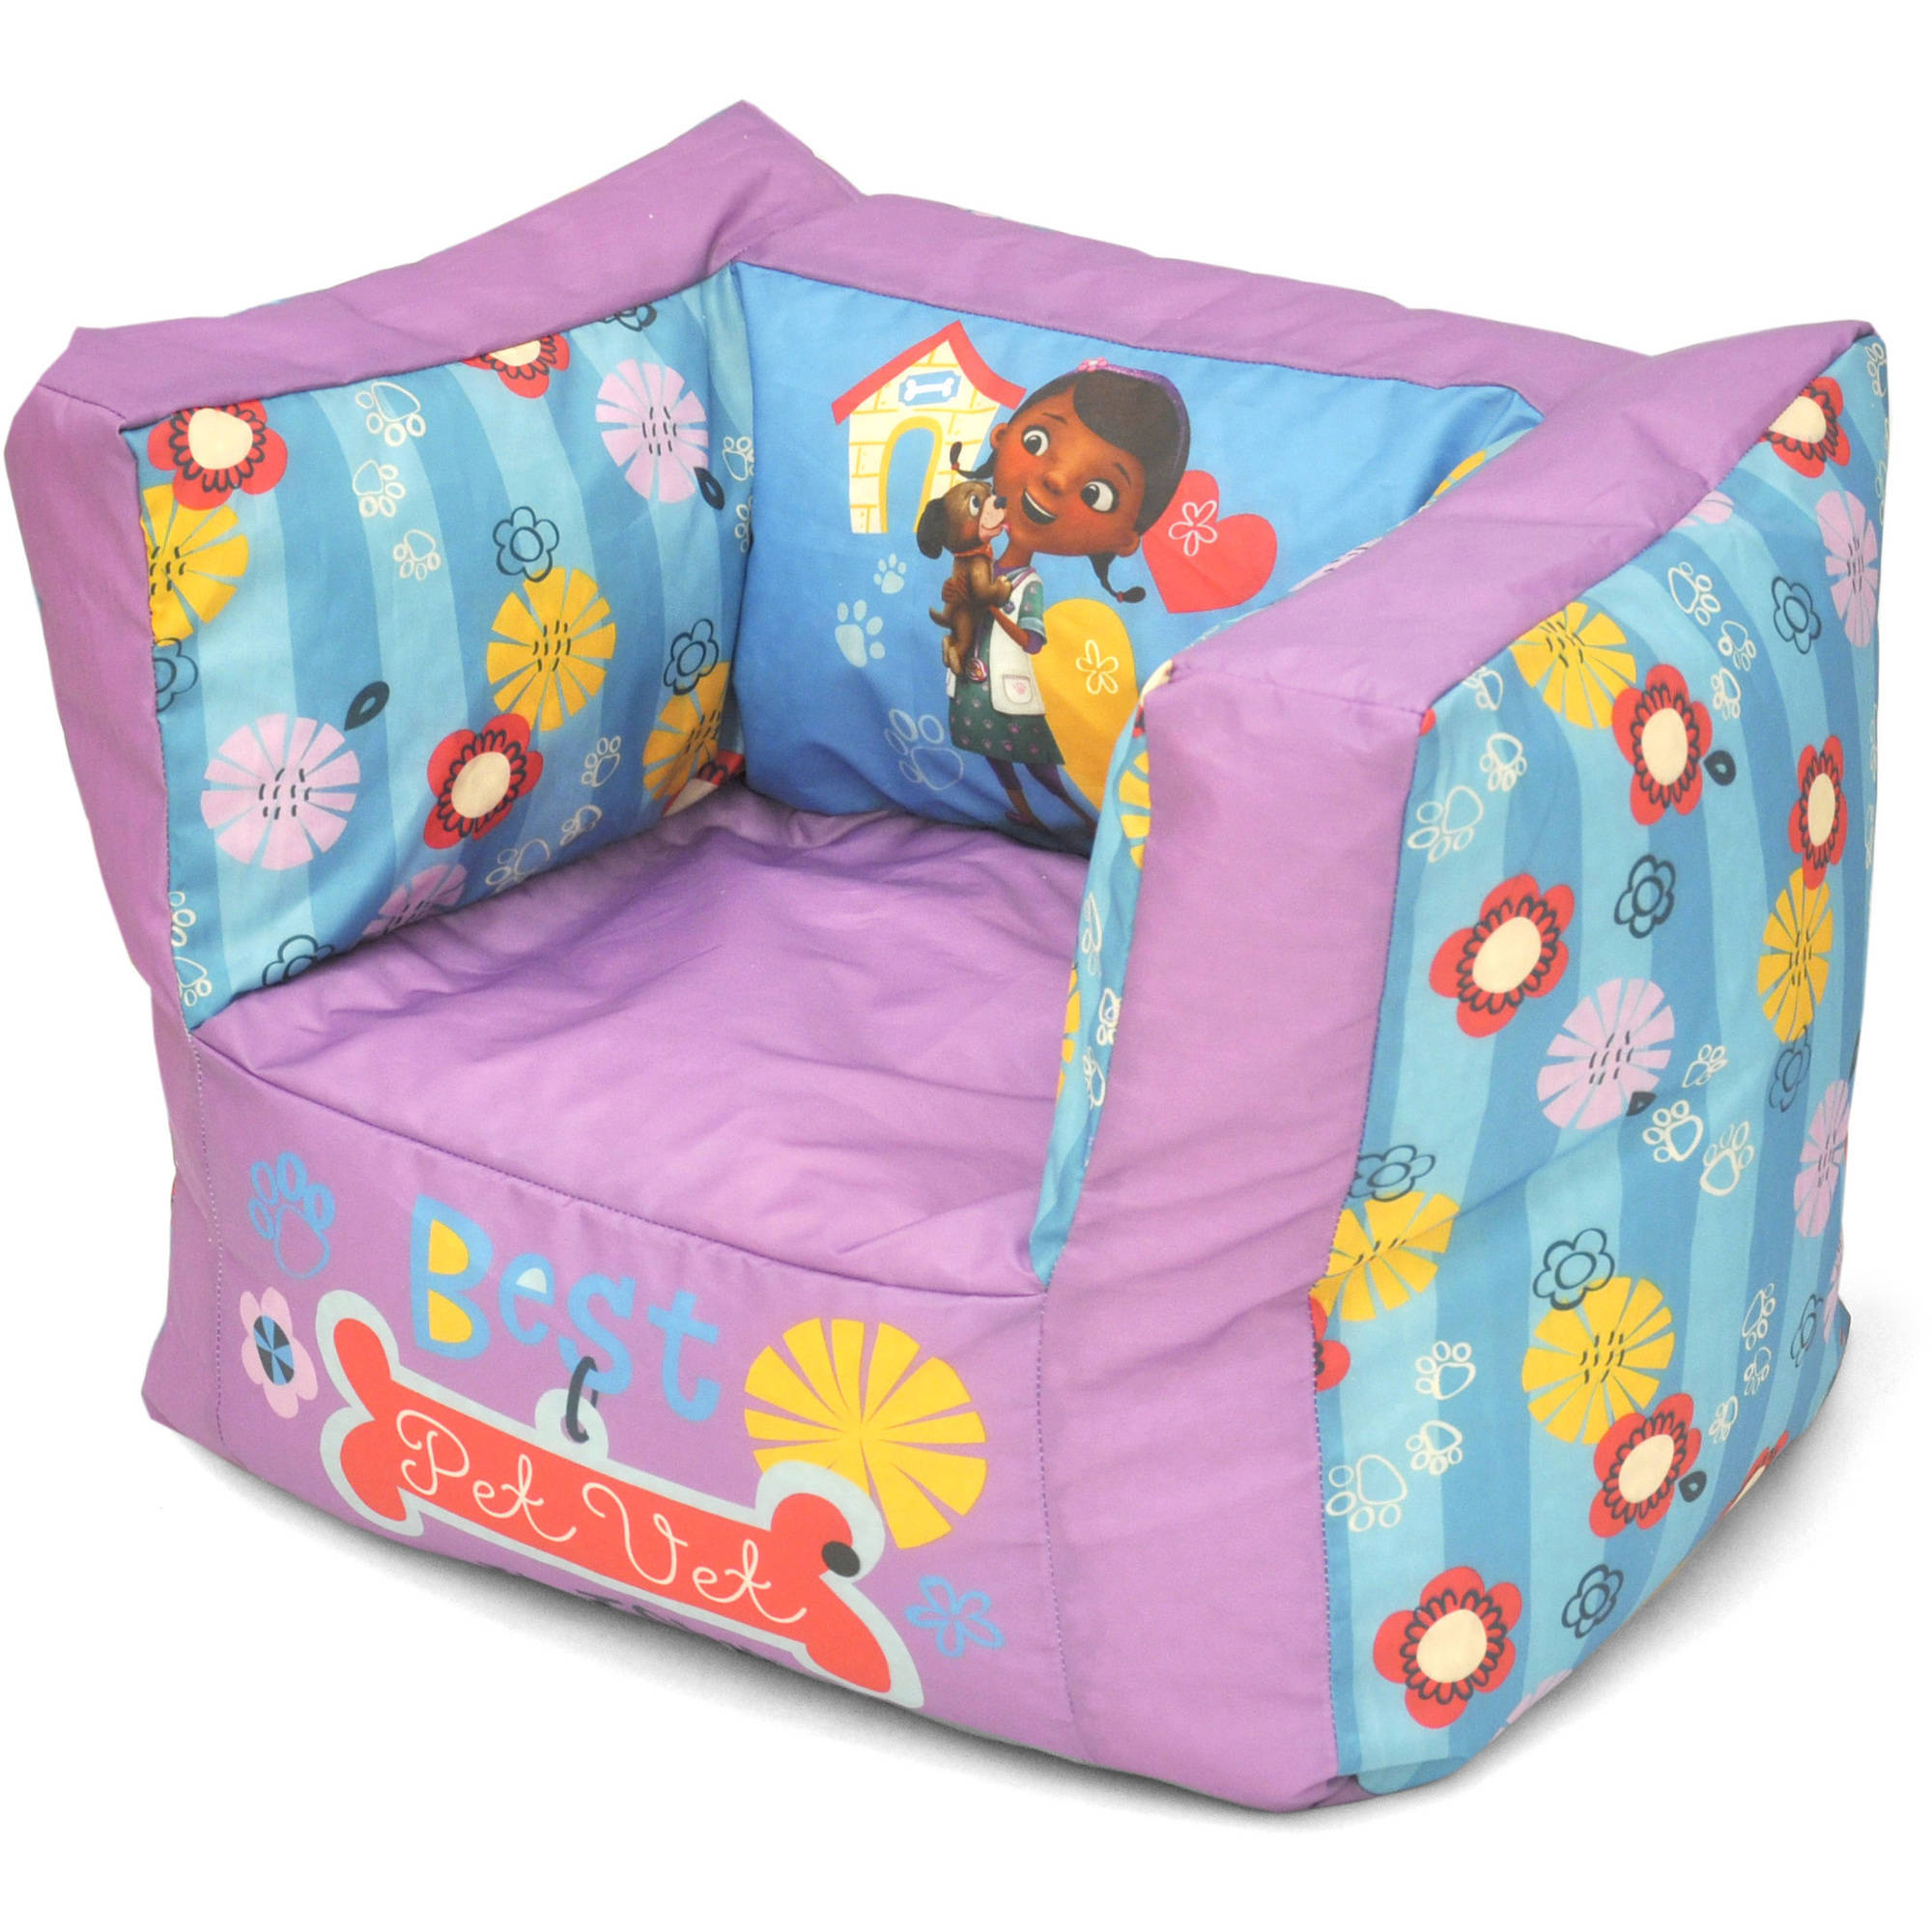 Doc McStuffins Square Bean Bag Chair